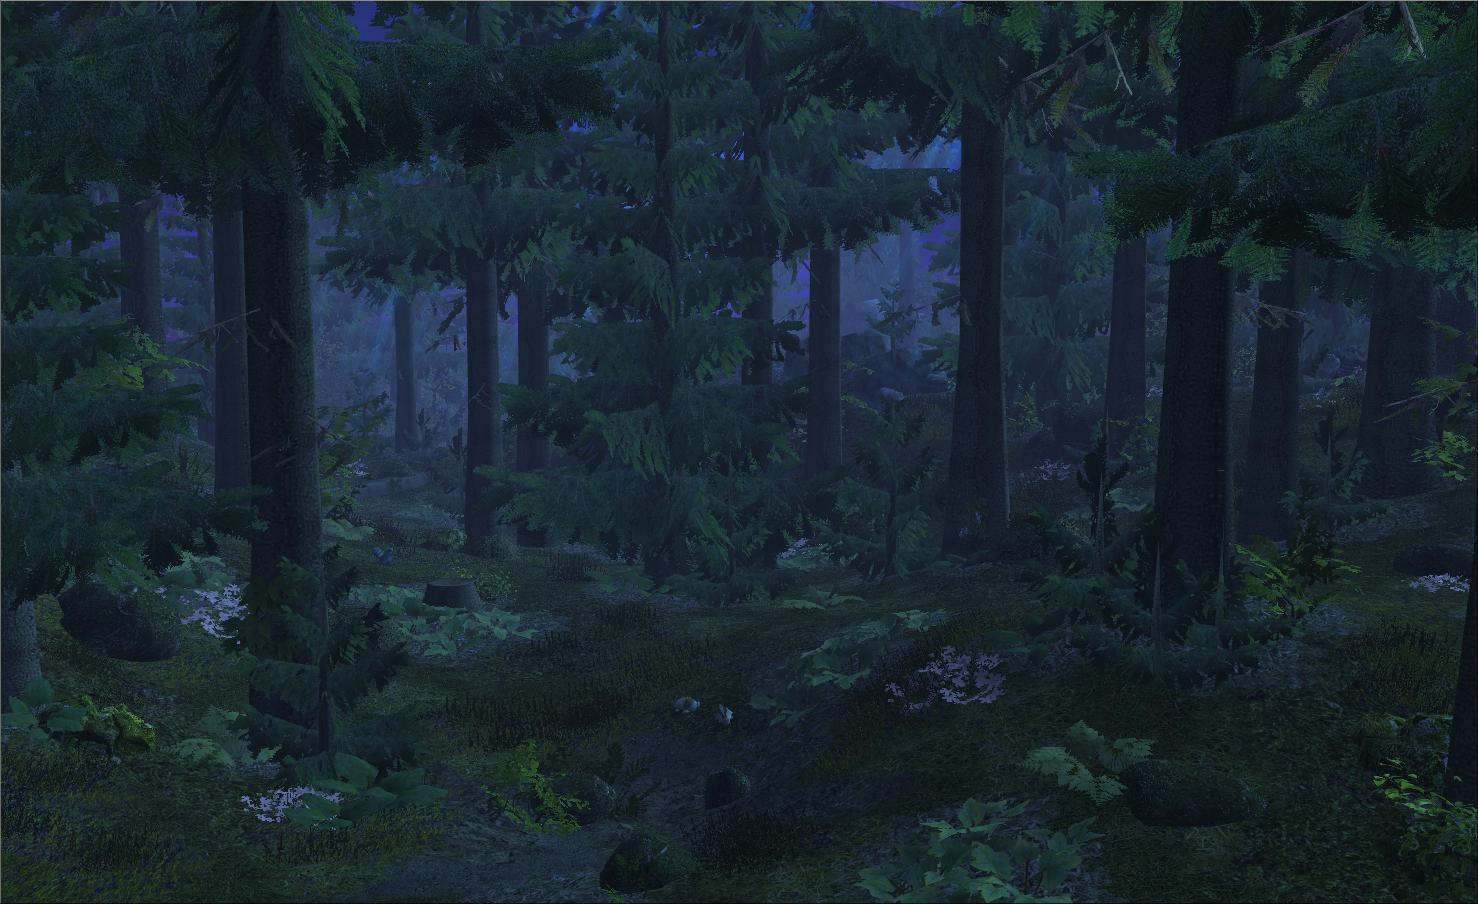 Forest Night Live Wallpaper Para Android Apk Baixar